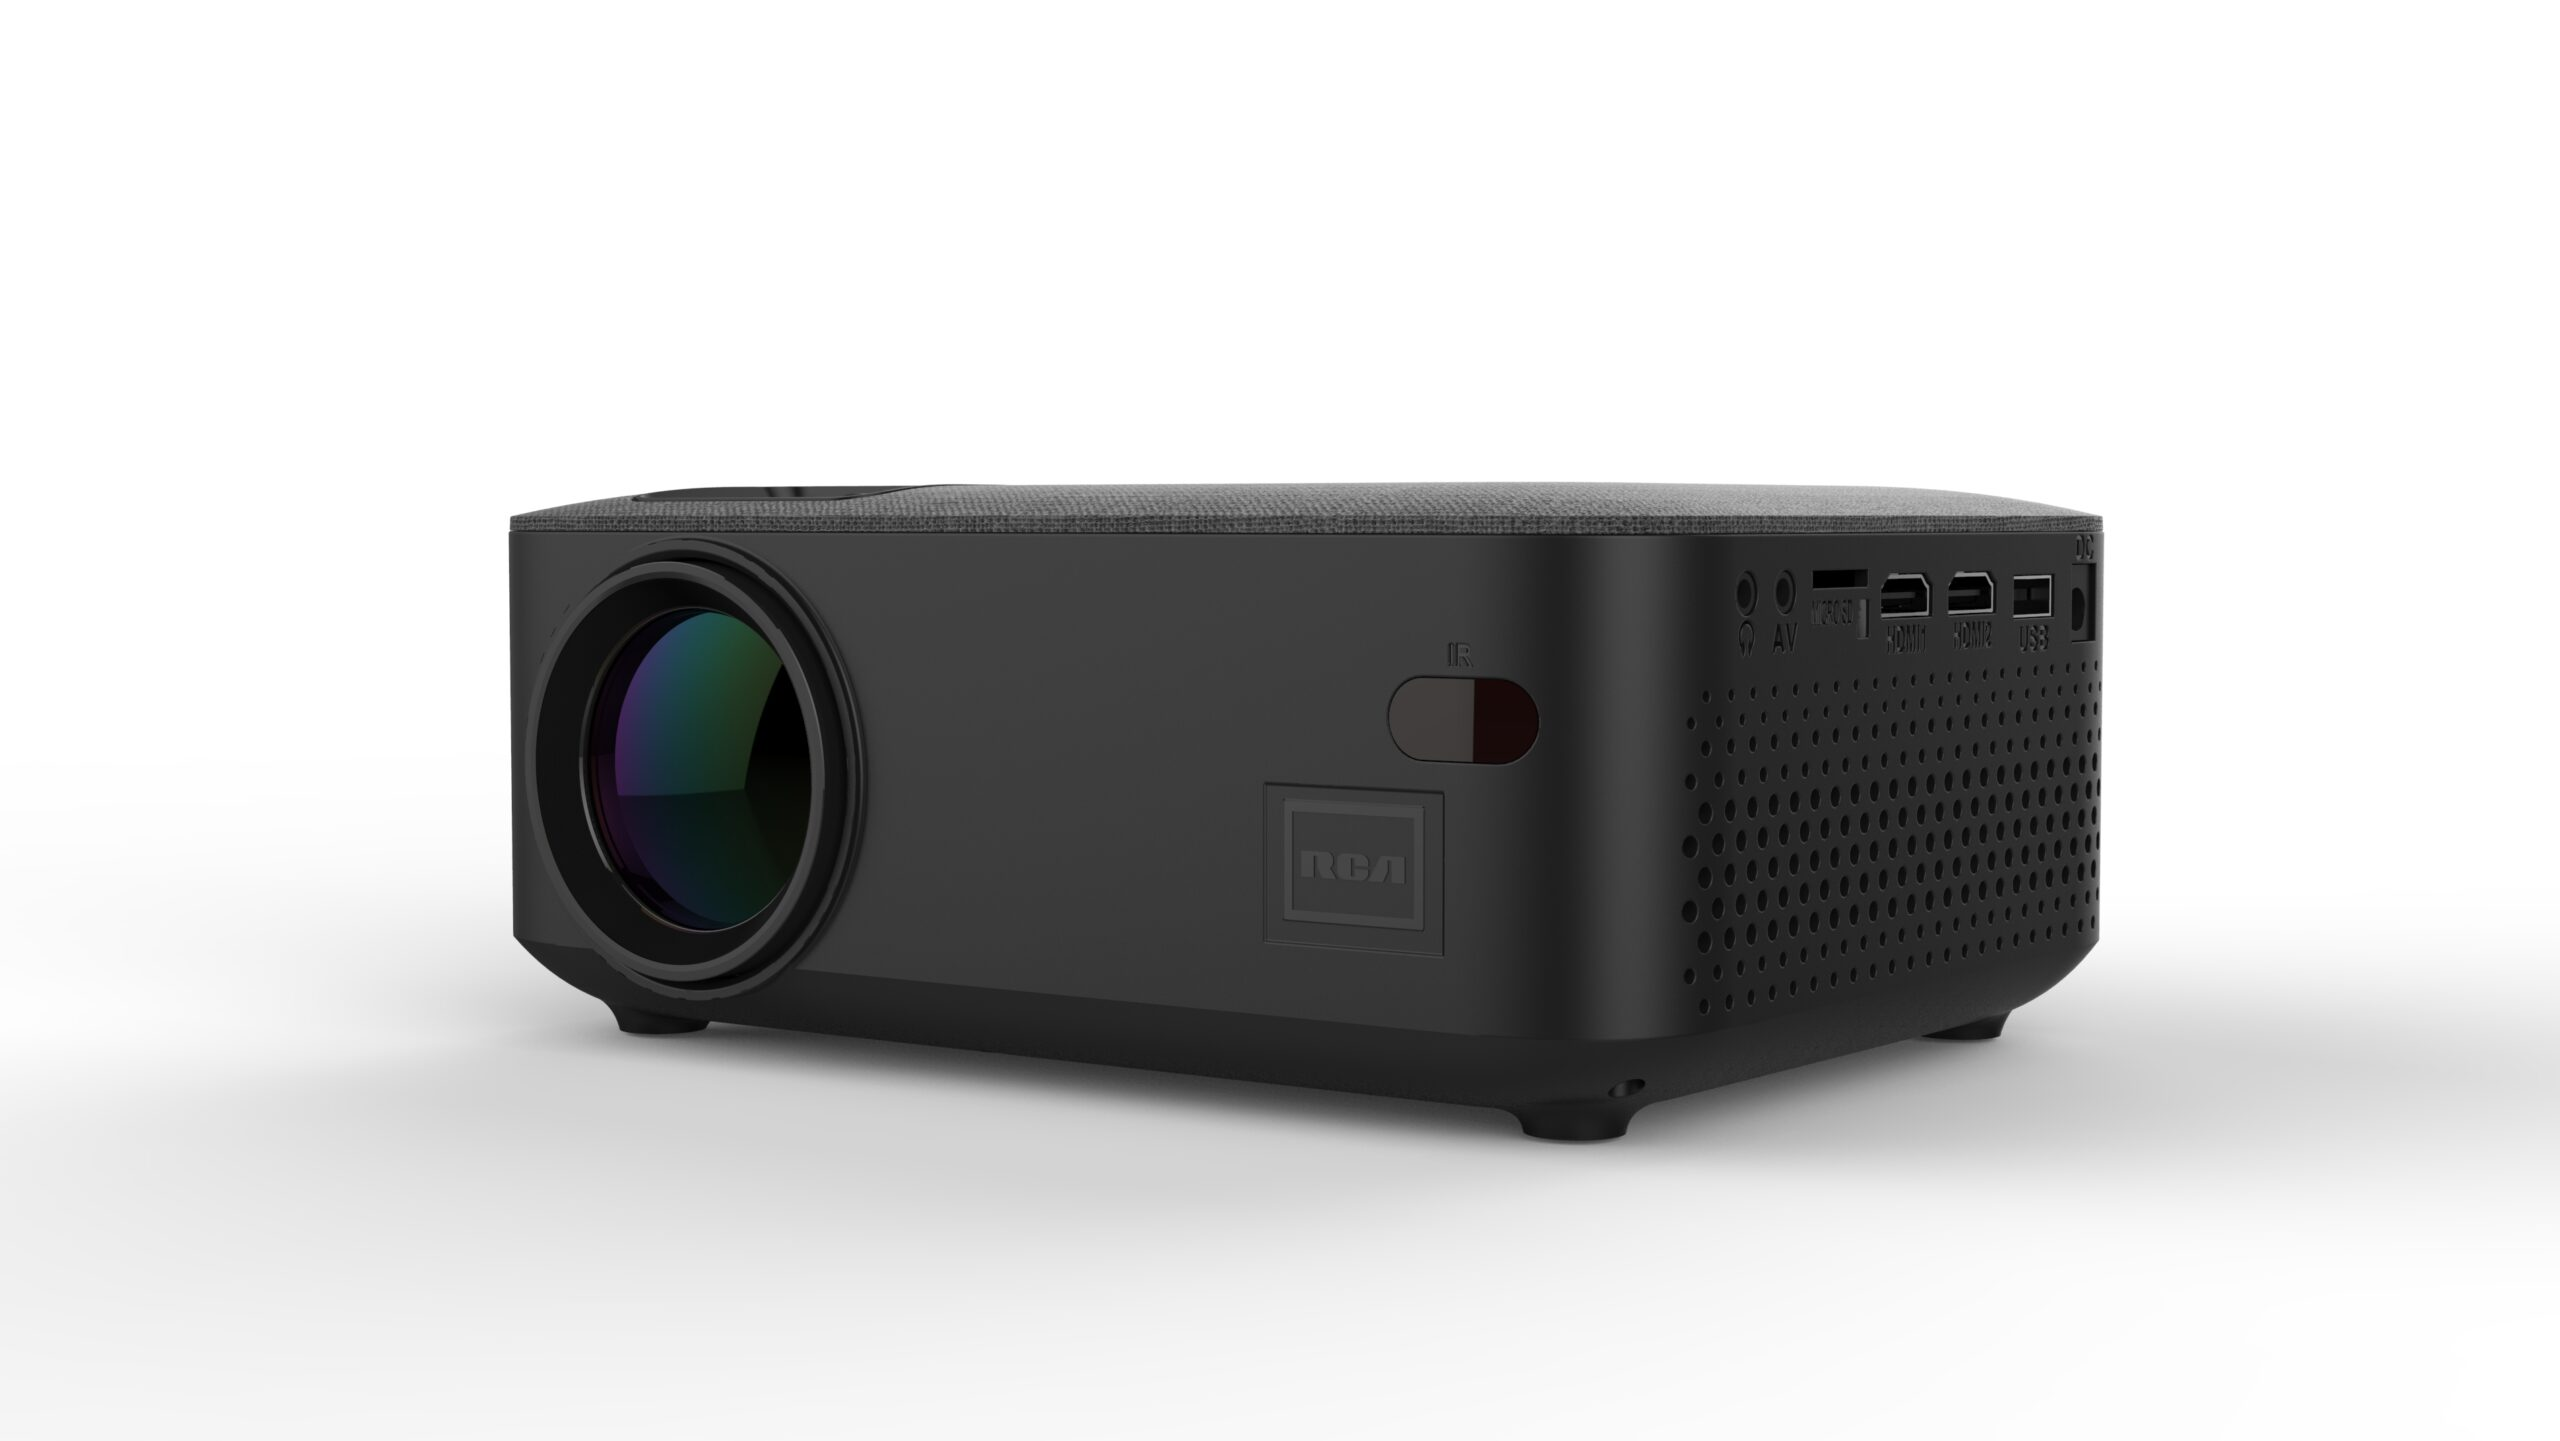 RCA 480p Home Theater Projector